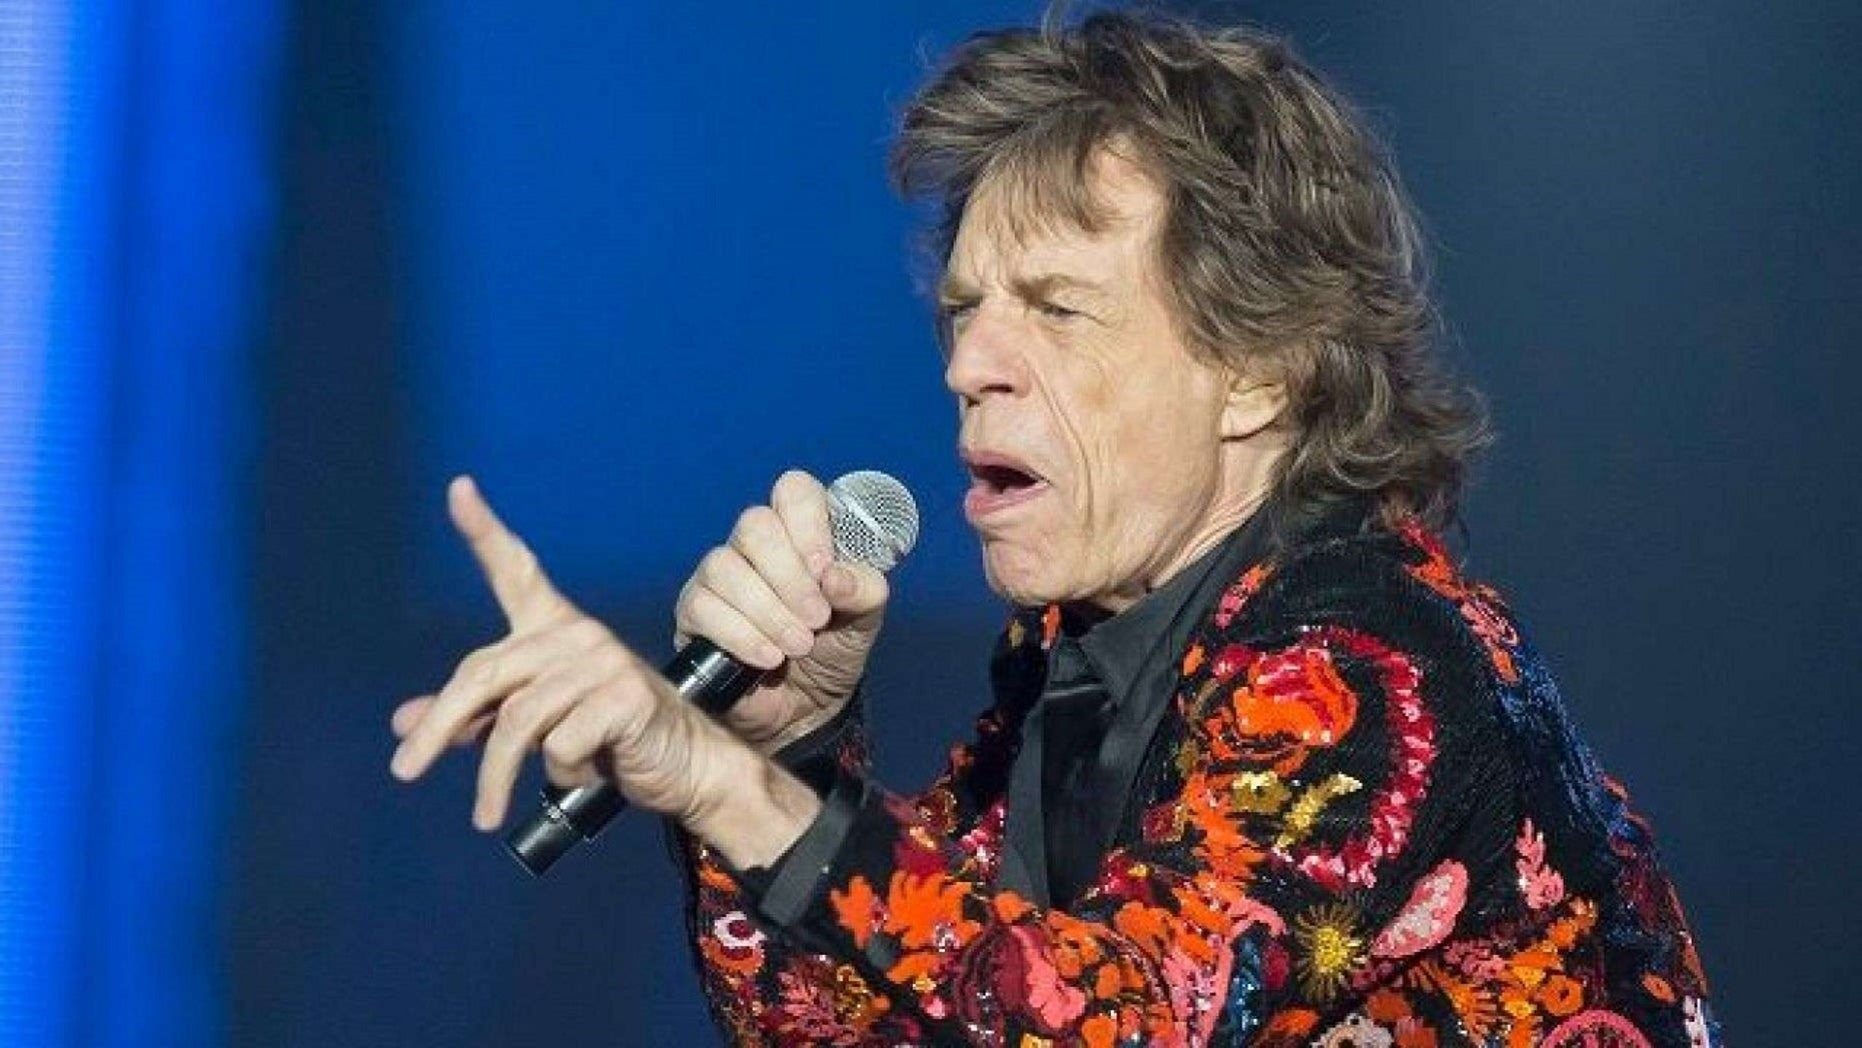 Mick Jagger: Mick Jagger To Undergo Heart Surgery In NYC This Week